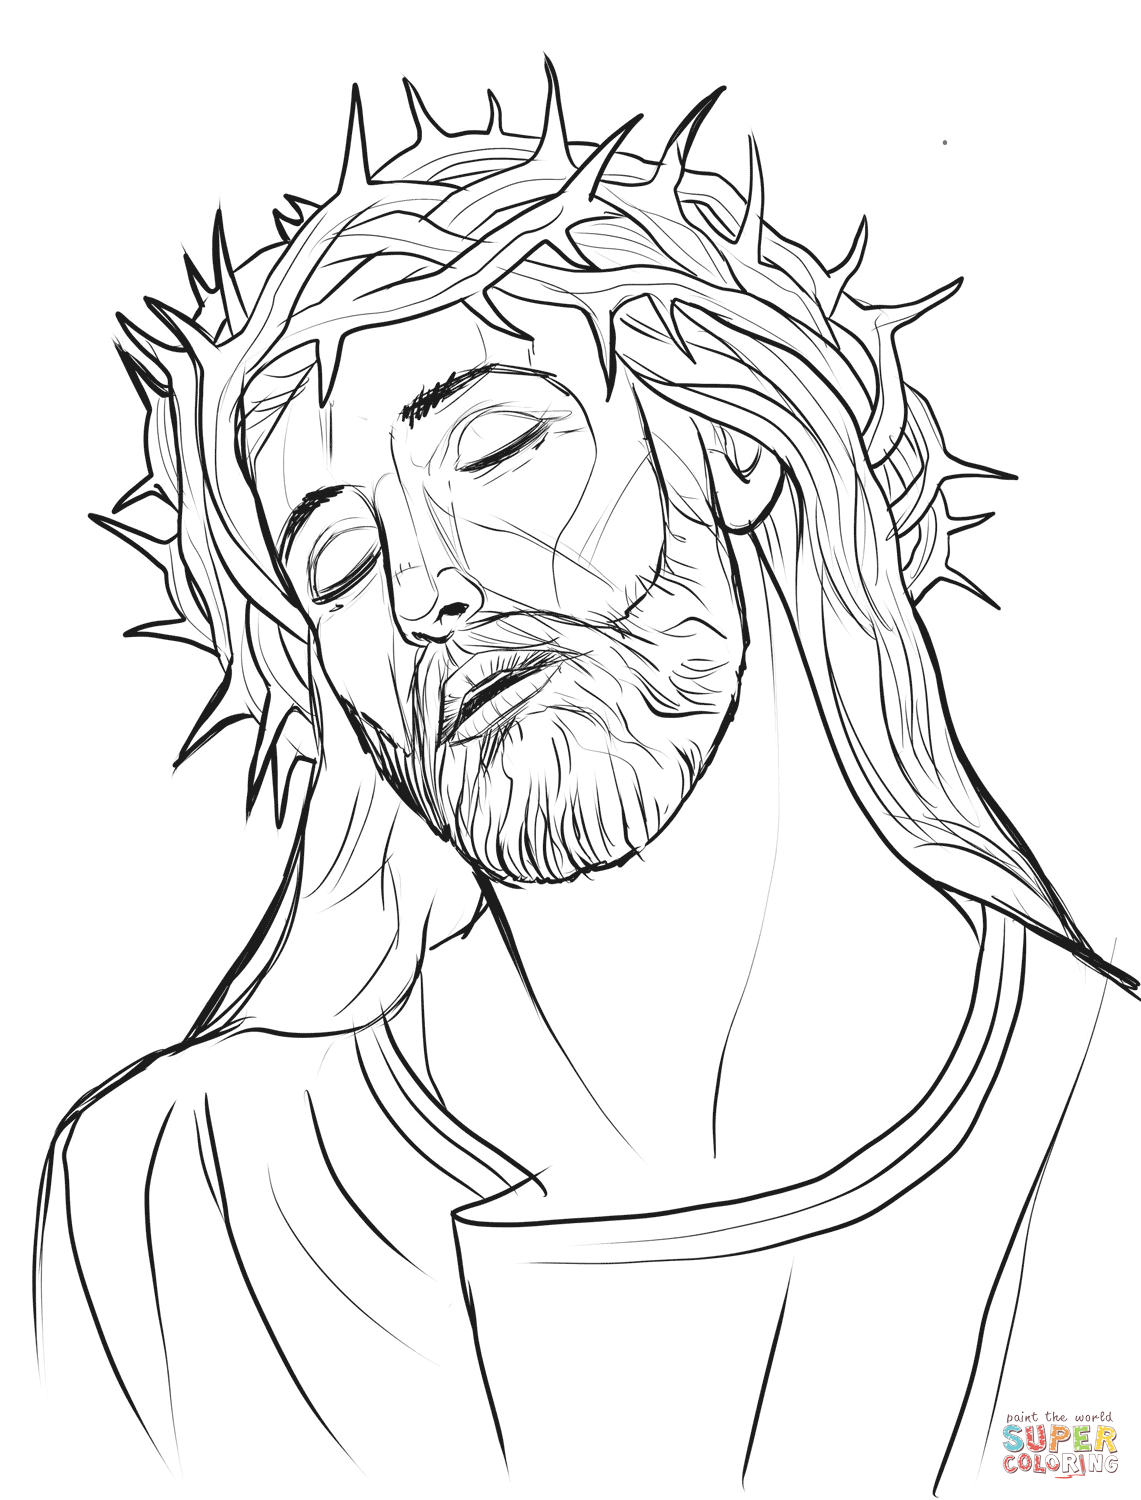 Christ with a crown of thorns super coloring